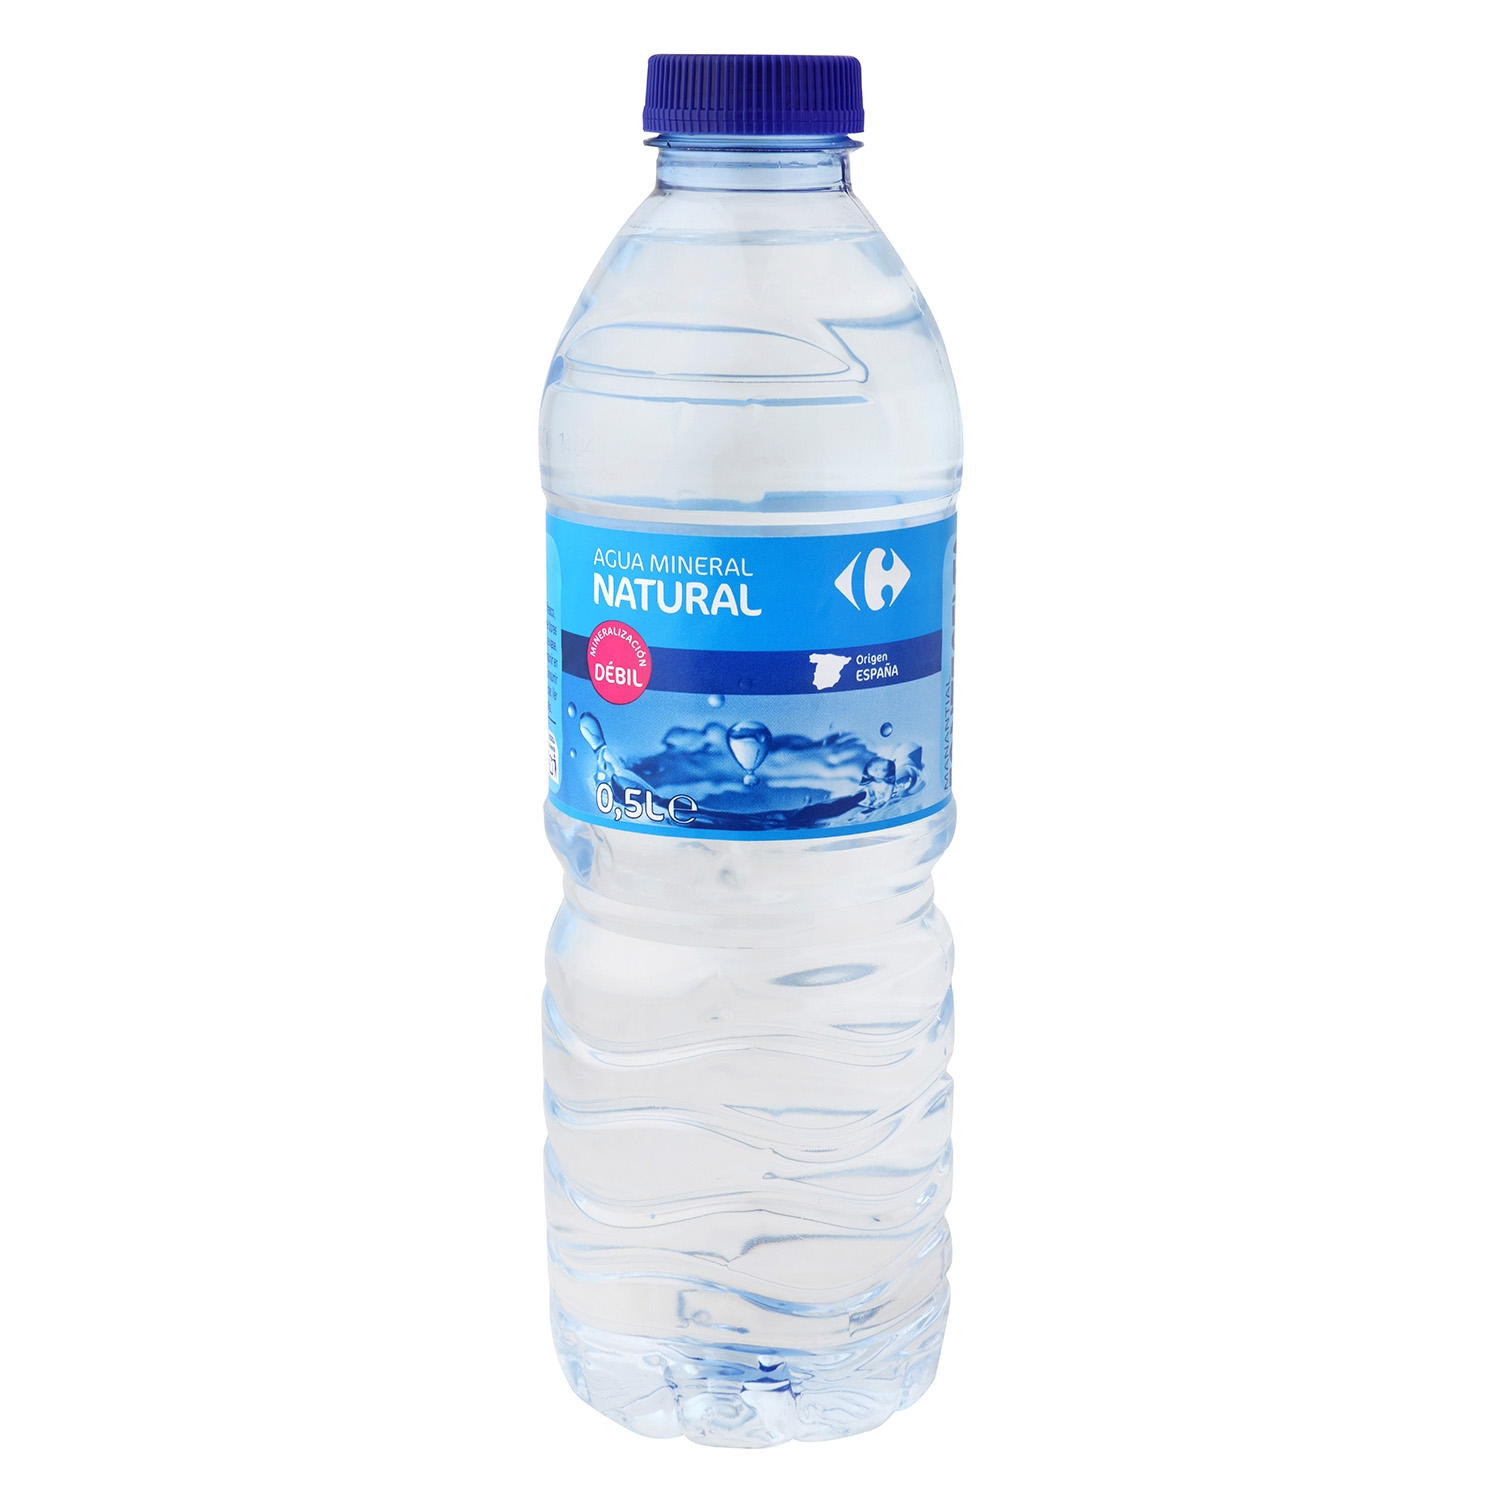 Agua mineral Carrefour natural 50 cl.